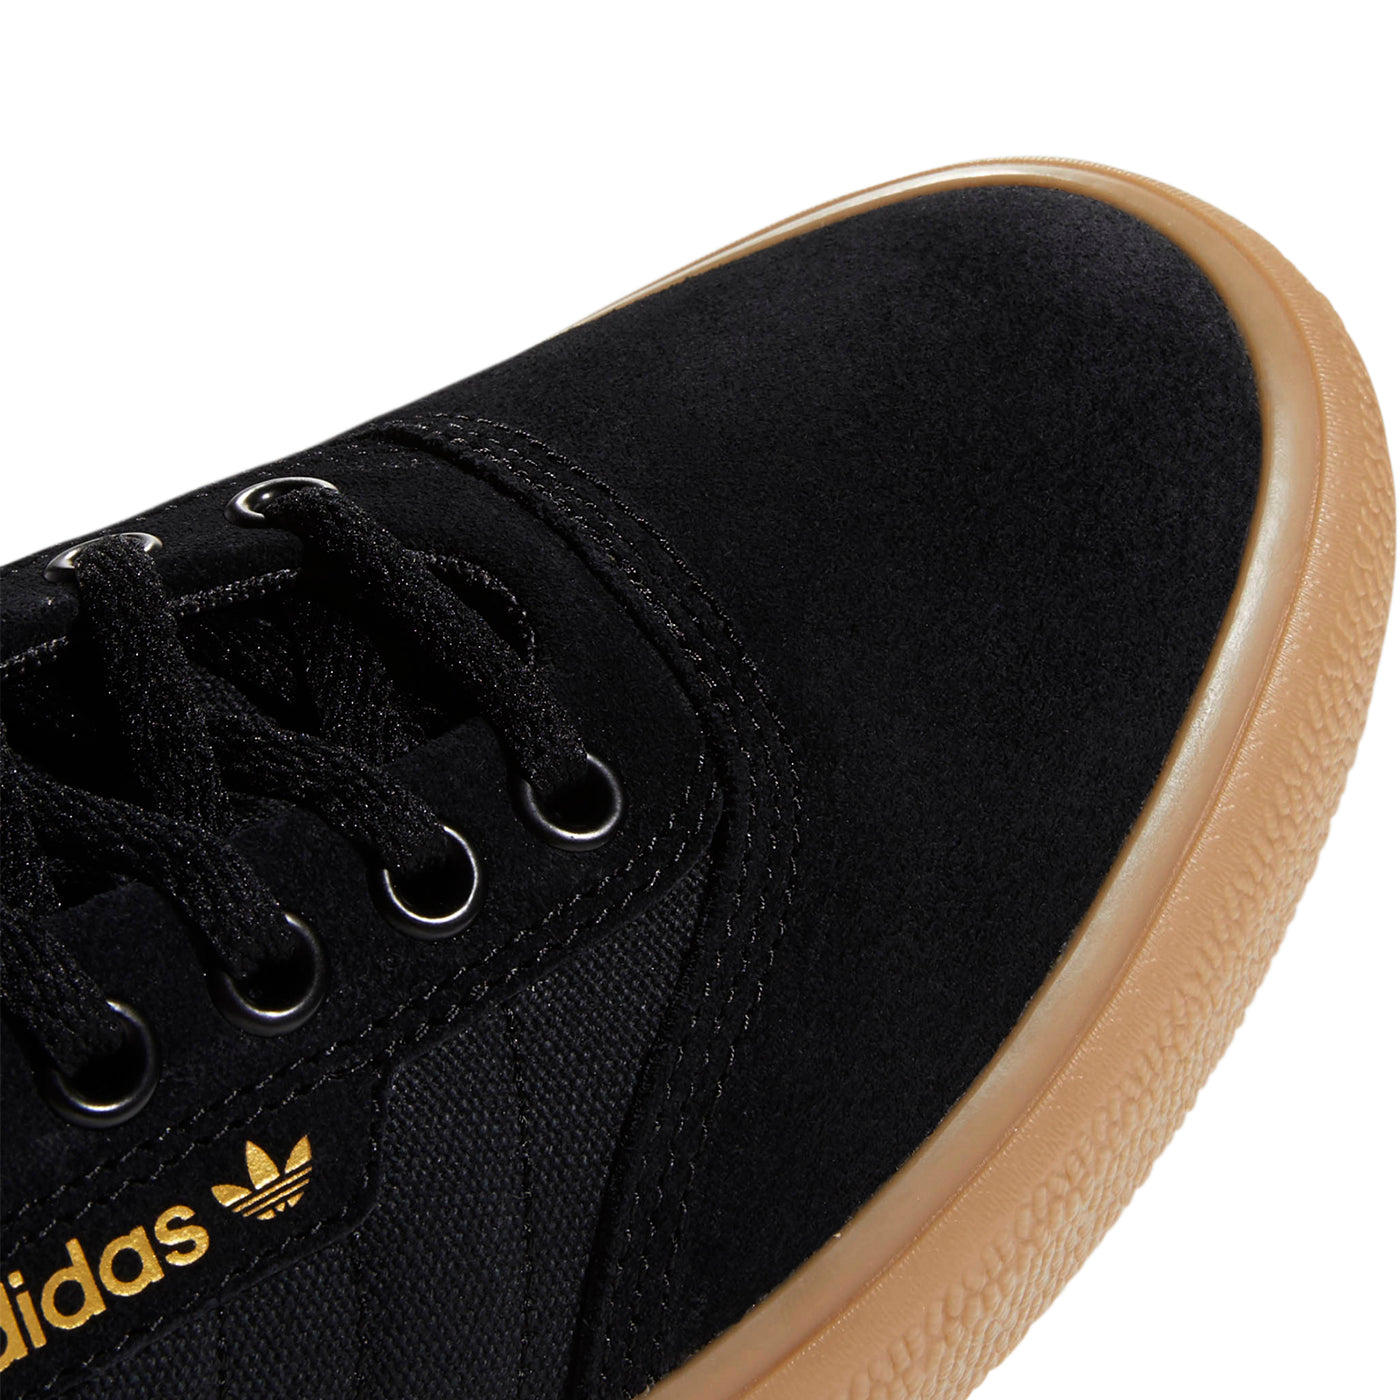 on sale 52a03 5fd1f Adidas 3MC Shoes - Core Black  Solid Grey  Gum. Size Charts